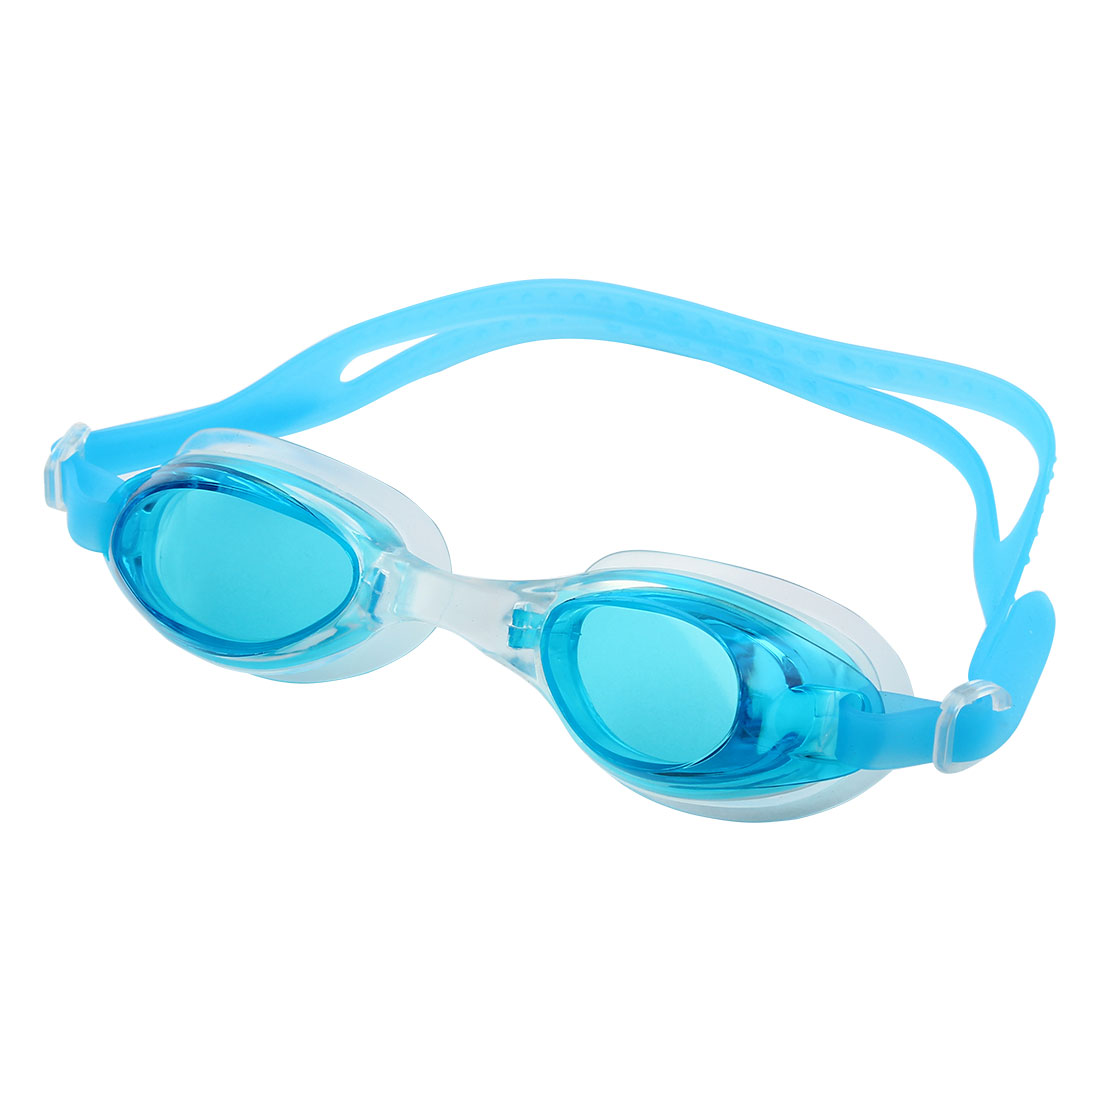 Silicone Adjustable Belt Clear Vision Anti Fog Swim Glasses Swimming Goggles Blue w Storage Bag for Youth Adult Men Women